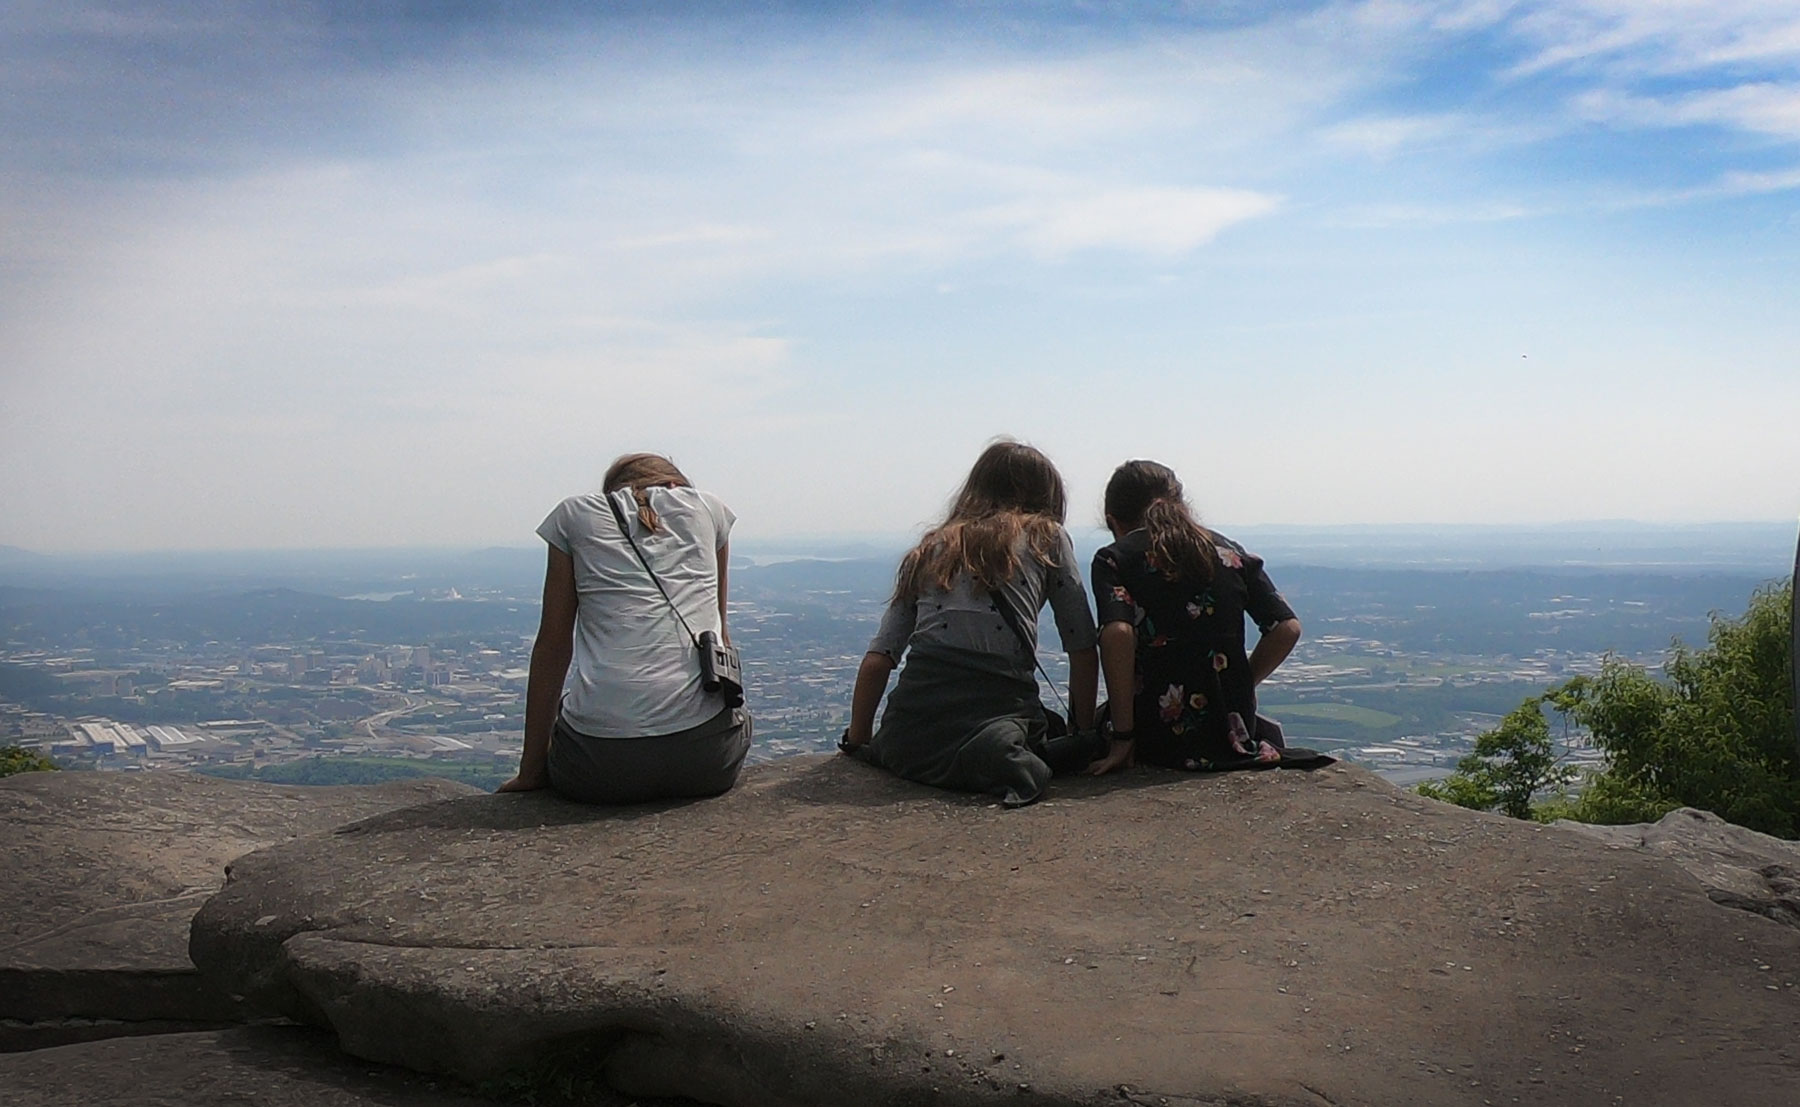 Three girls on Lookout Mountain Overlook at Chattanooga Battlefield, Tennessee